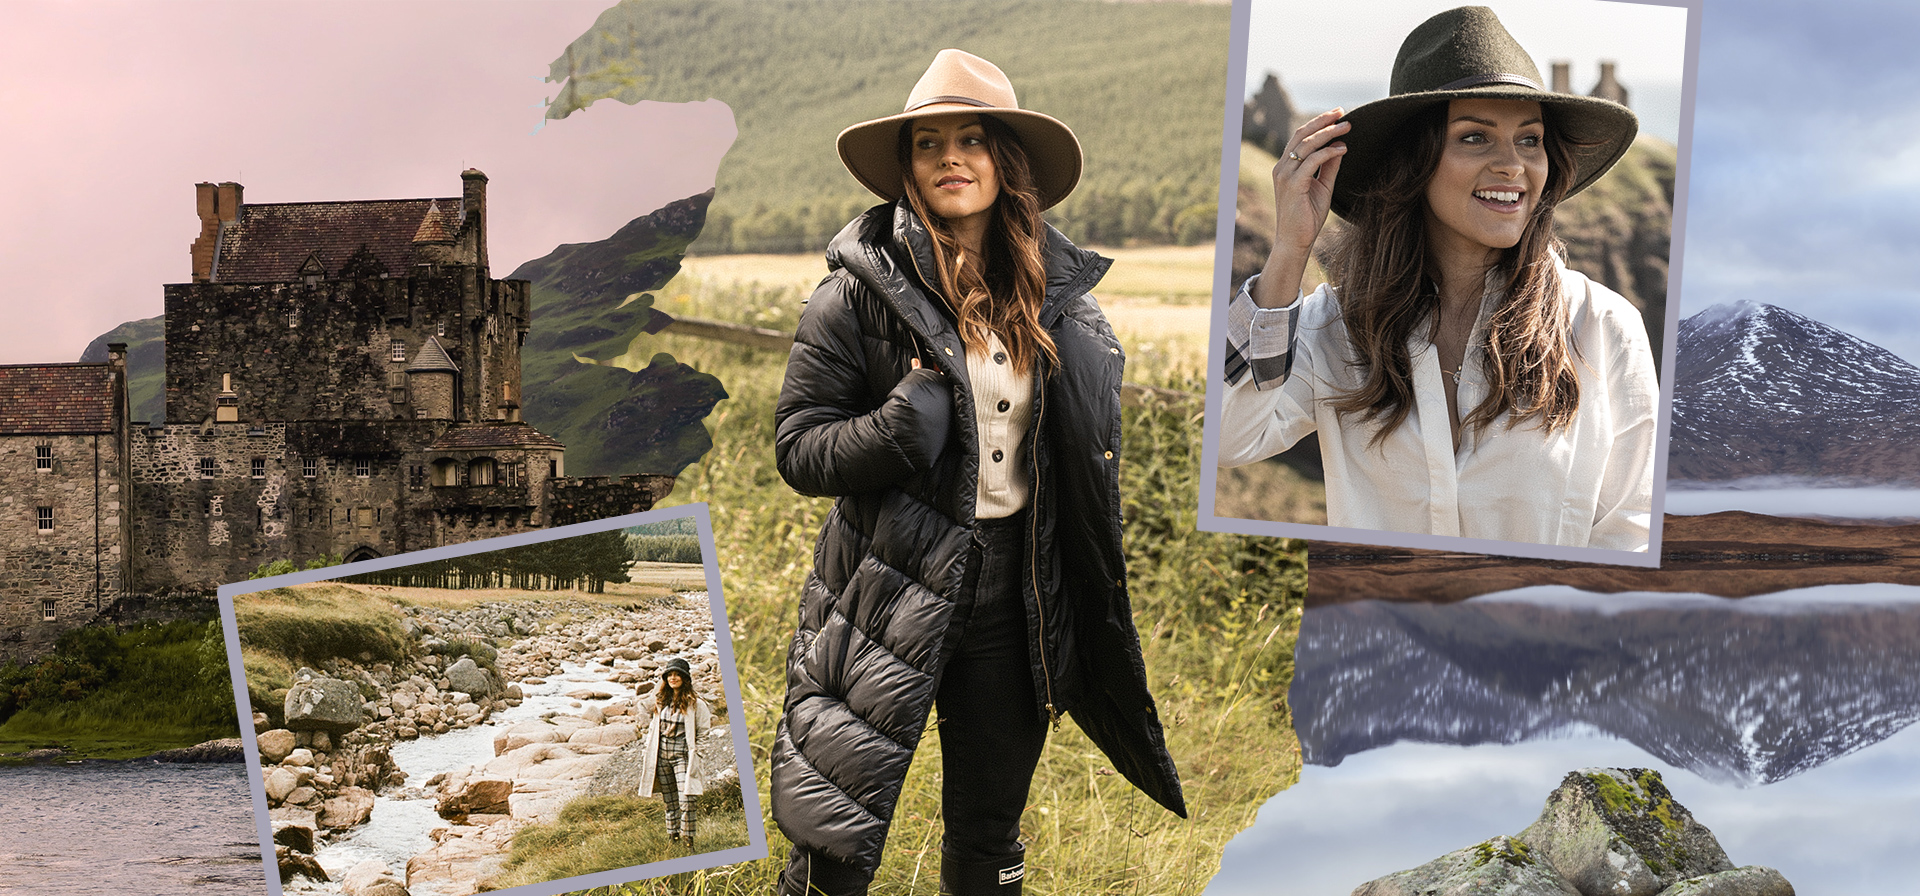 (Barbour) Barbour AW20 Women's Tartan Collection with Amy Bell